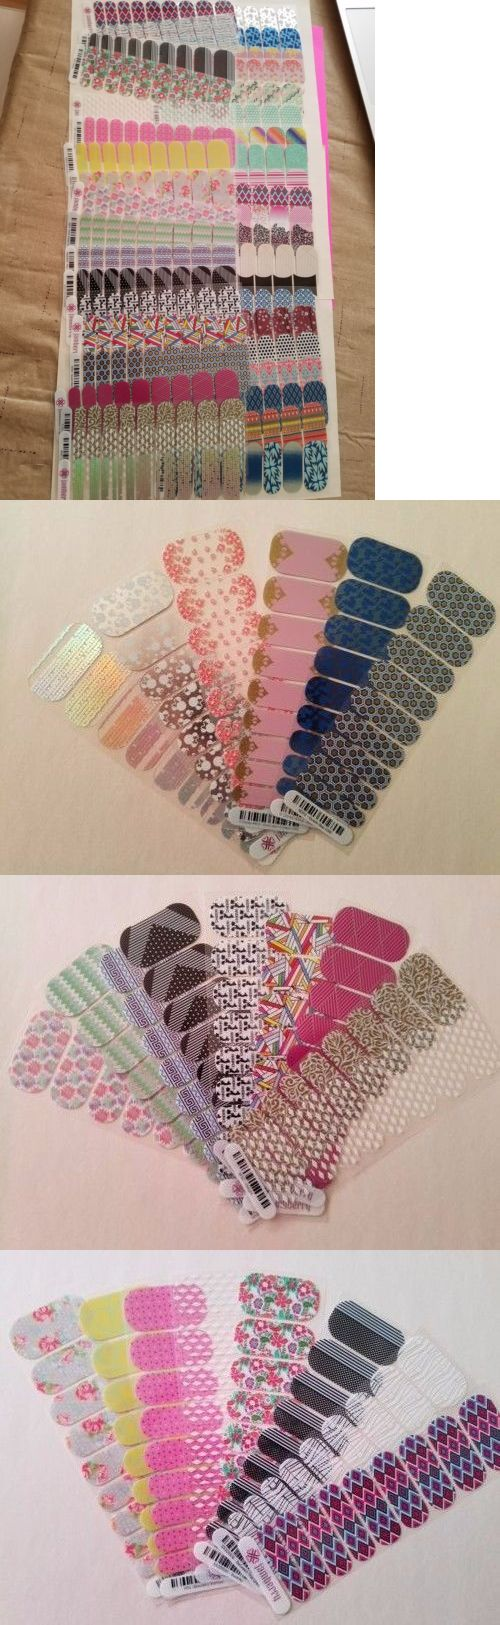 Nail Art Accessories: Jamberry Lot 40 Half Sheets Retired Exclusive Disney Sparkle Clear -> BUY IT NOW ONLY: $80 on eBay!